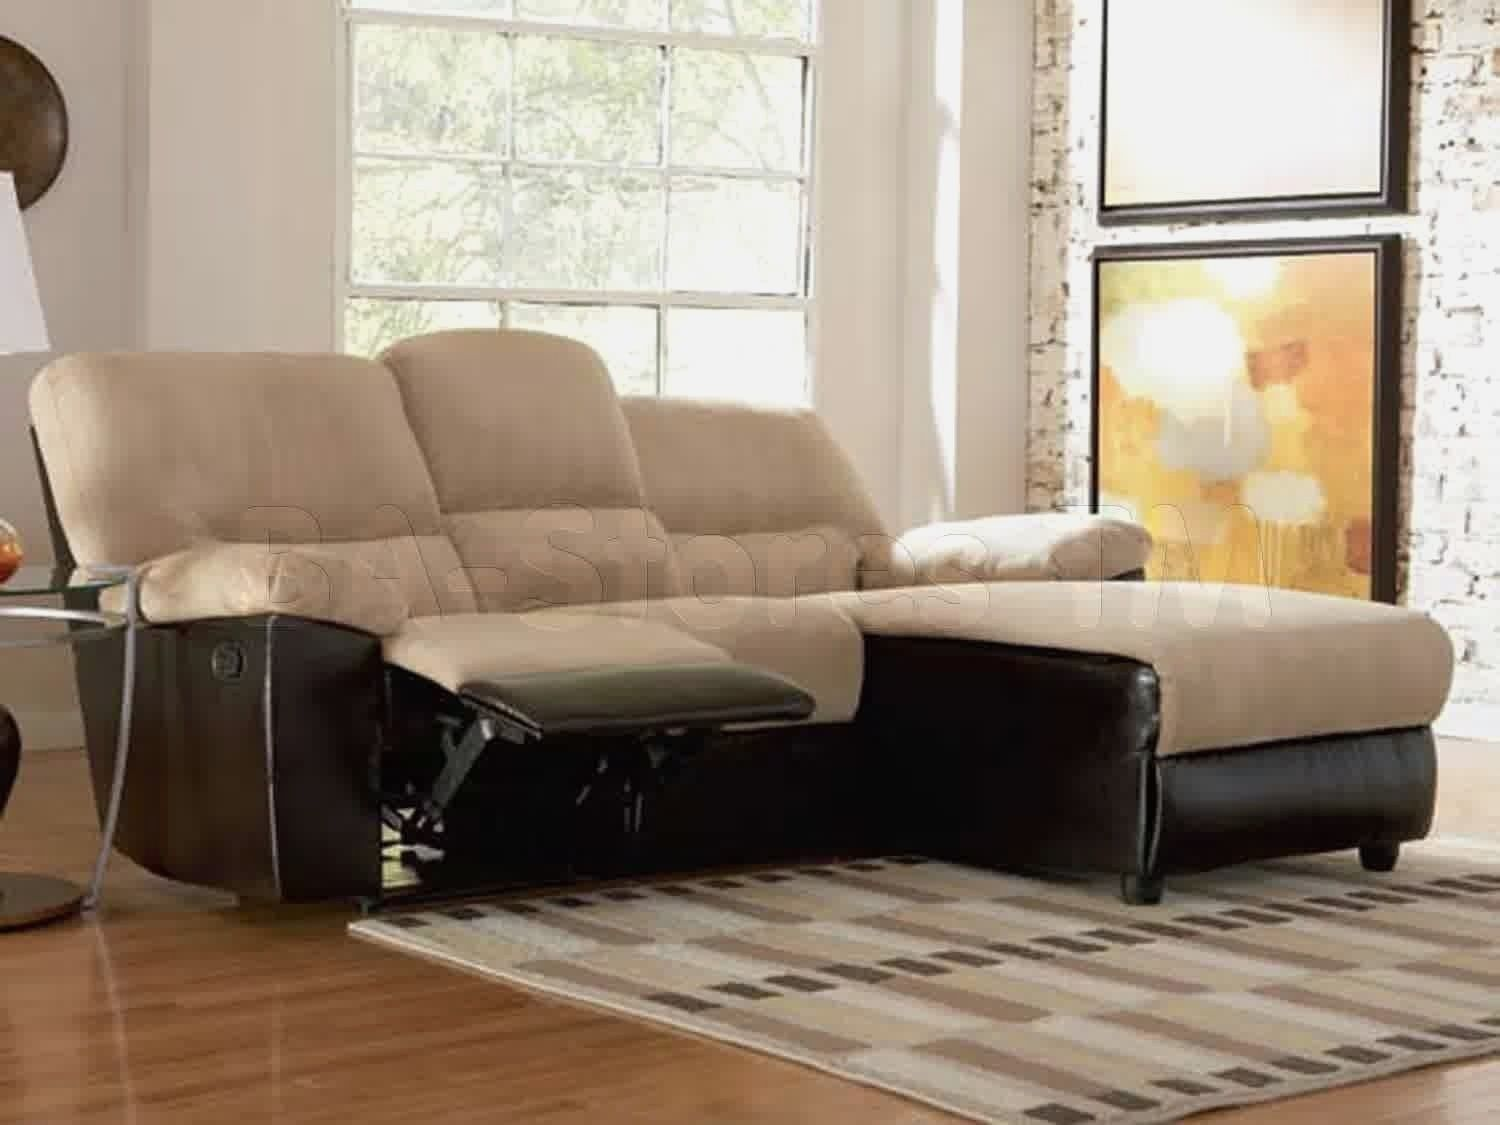 Apartment Size Sofa Bed Sectional | http://tmidb.com | Pinterest